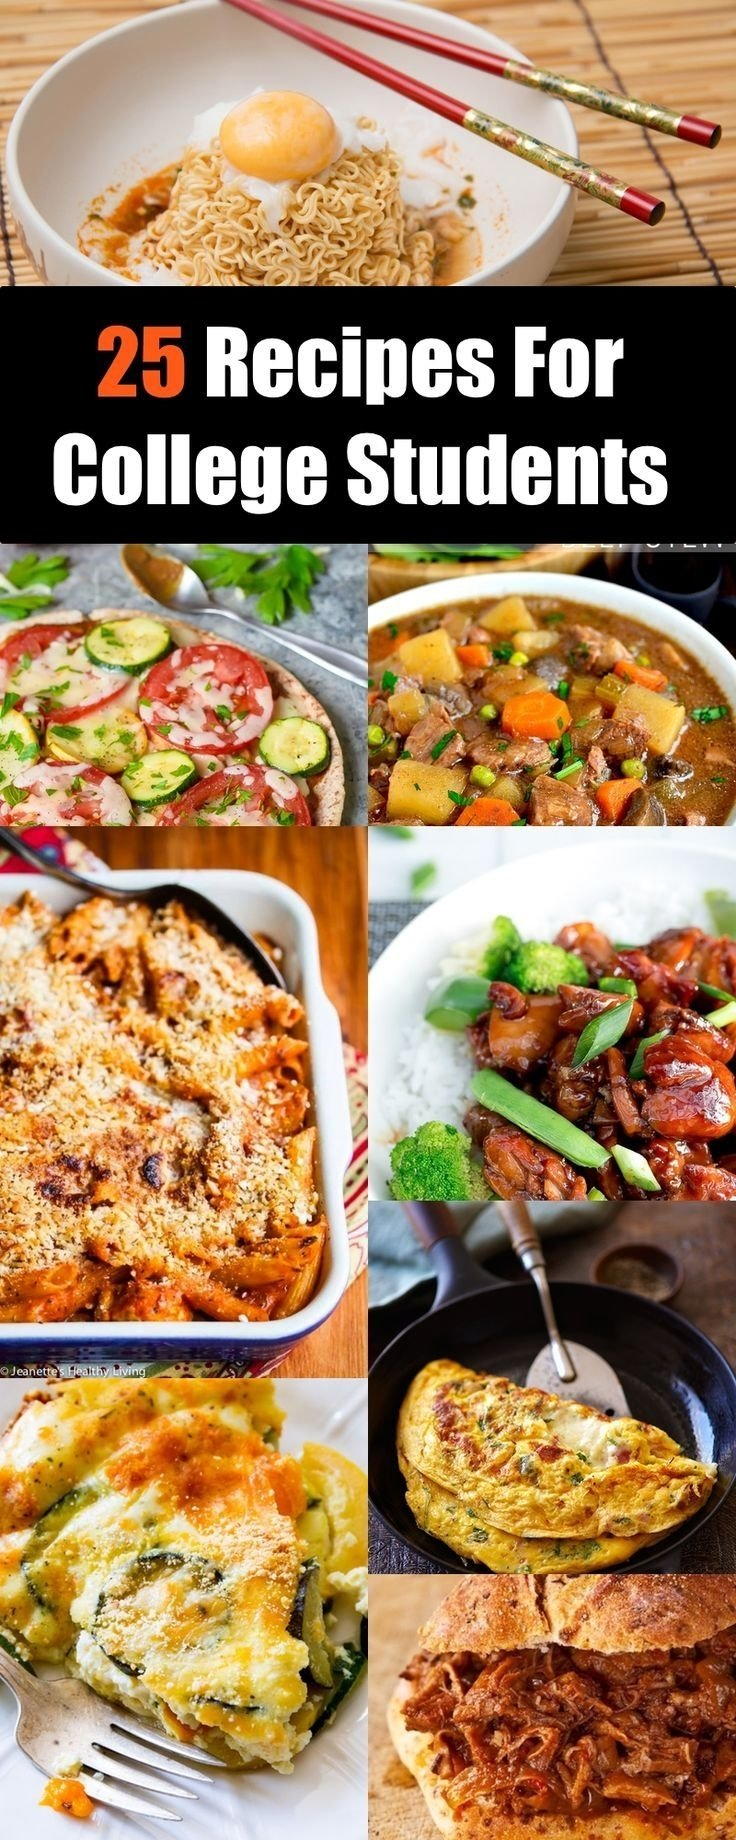 10 Amazing Healthy Meal Ideas On A Budget 25 recipes for college students that wont break your budget 1 2020